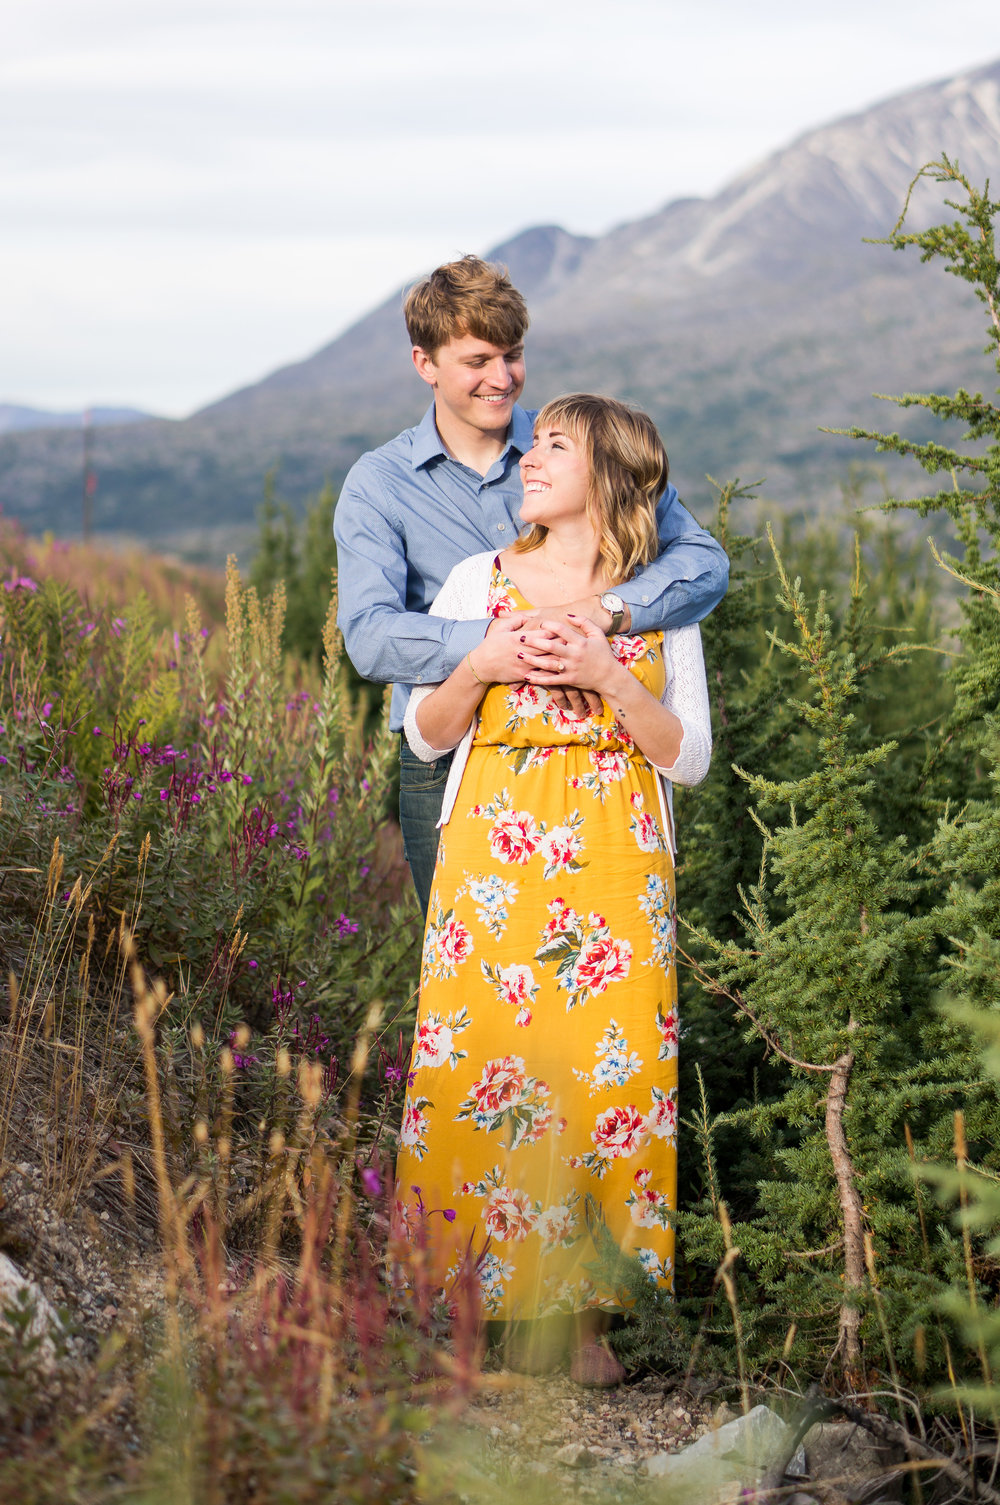 Scott's light blue button-up complements Kerri's yellow dress so well! And her floral print also complements the wildflowers in the foreground.